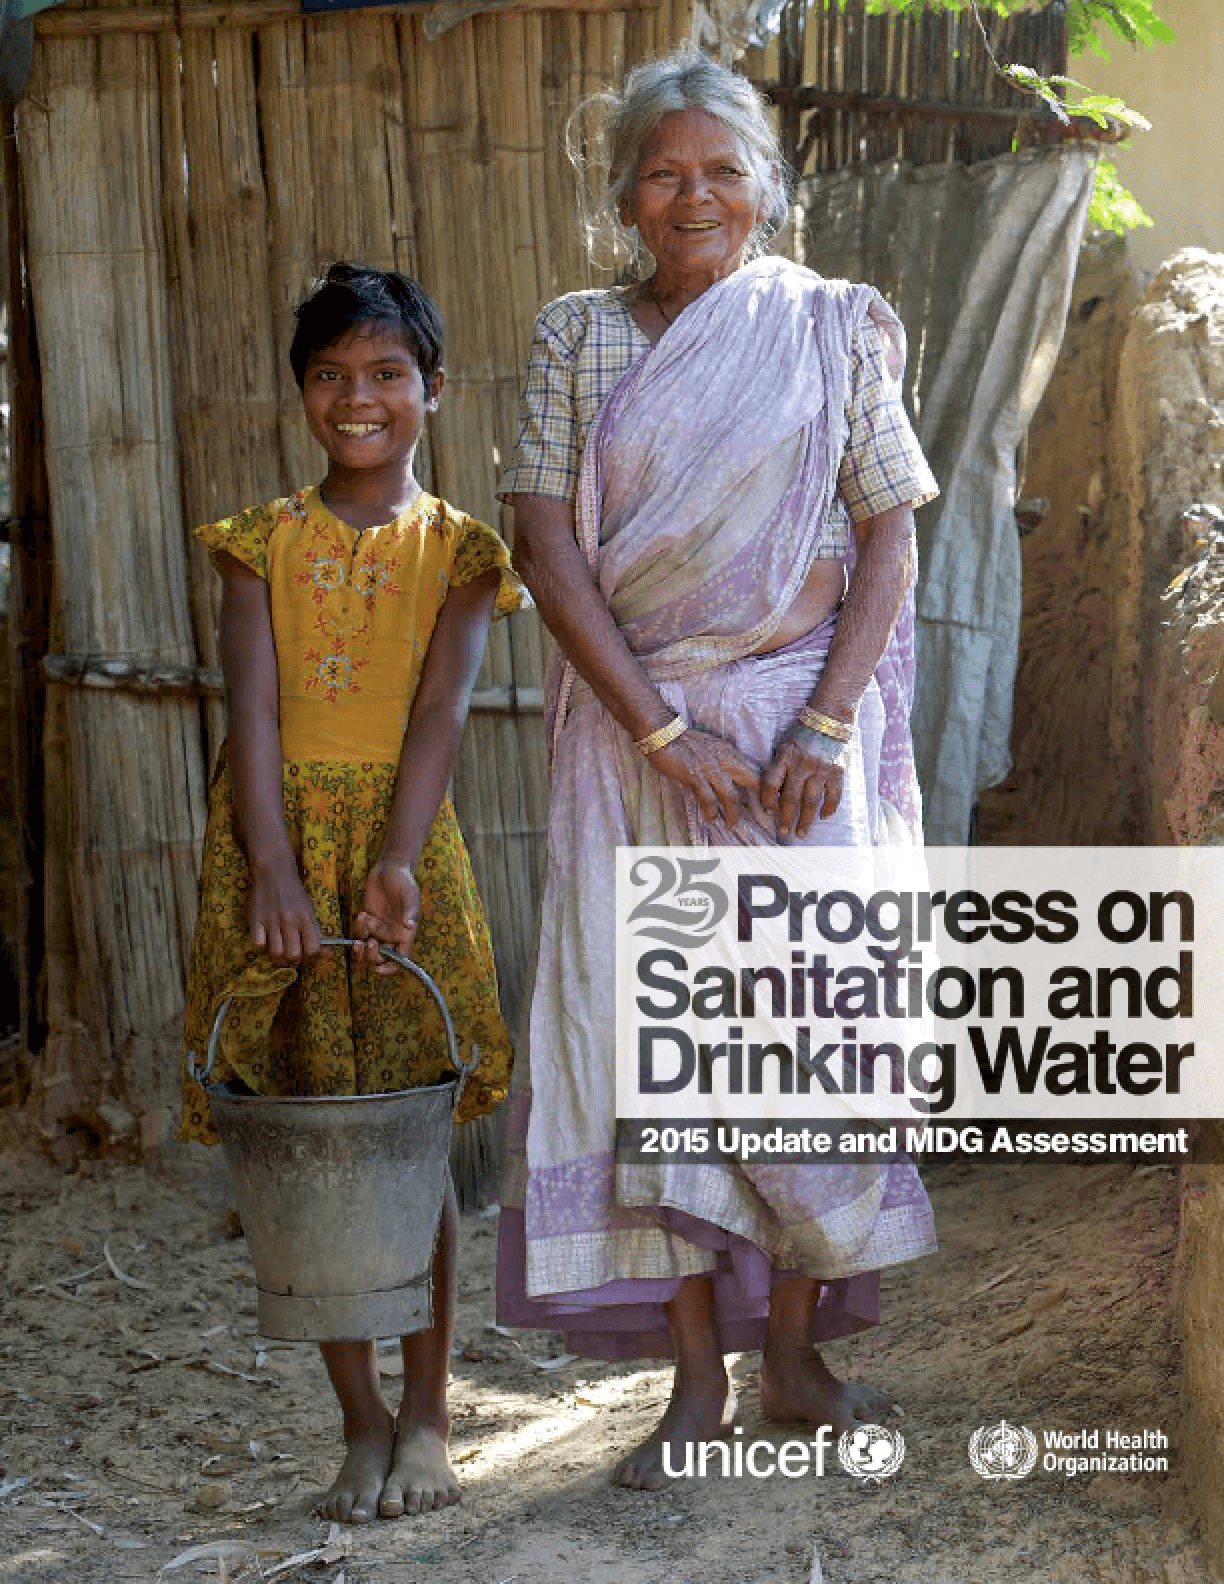 Progress on Sanitation and Drinking Water: 2015 Update and MDG Assessment